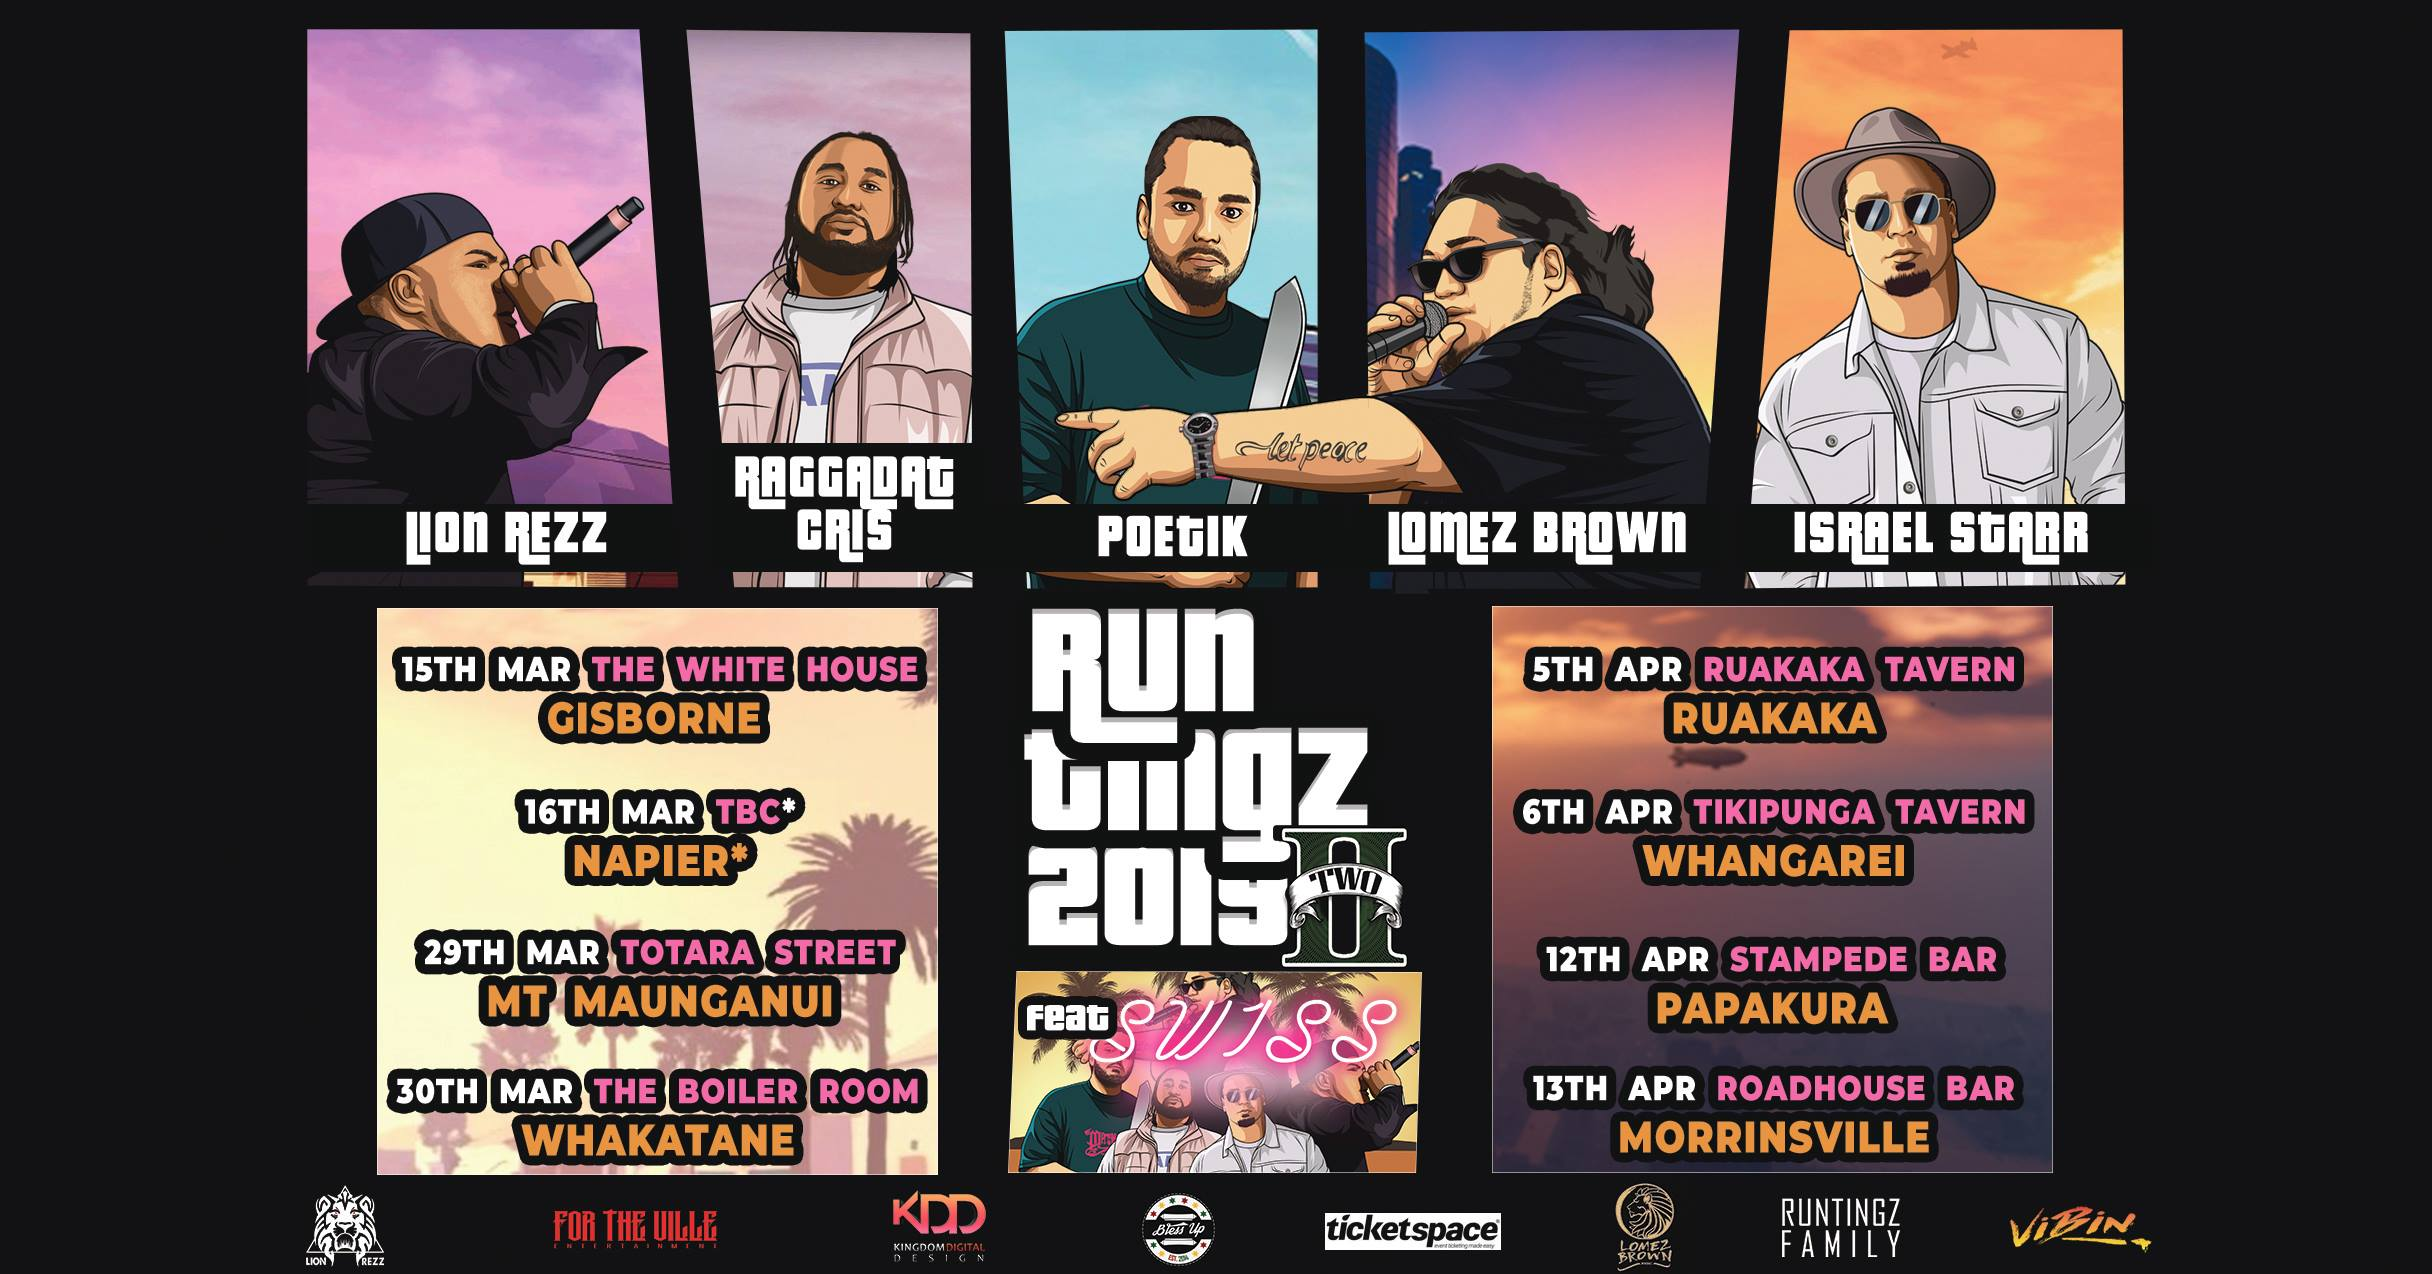 Tickets for RUNTINGZ 2019 NZ TOUR ft. SWISS - Mt. Maunganui in Tauranga from Ticketspace